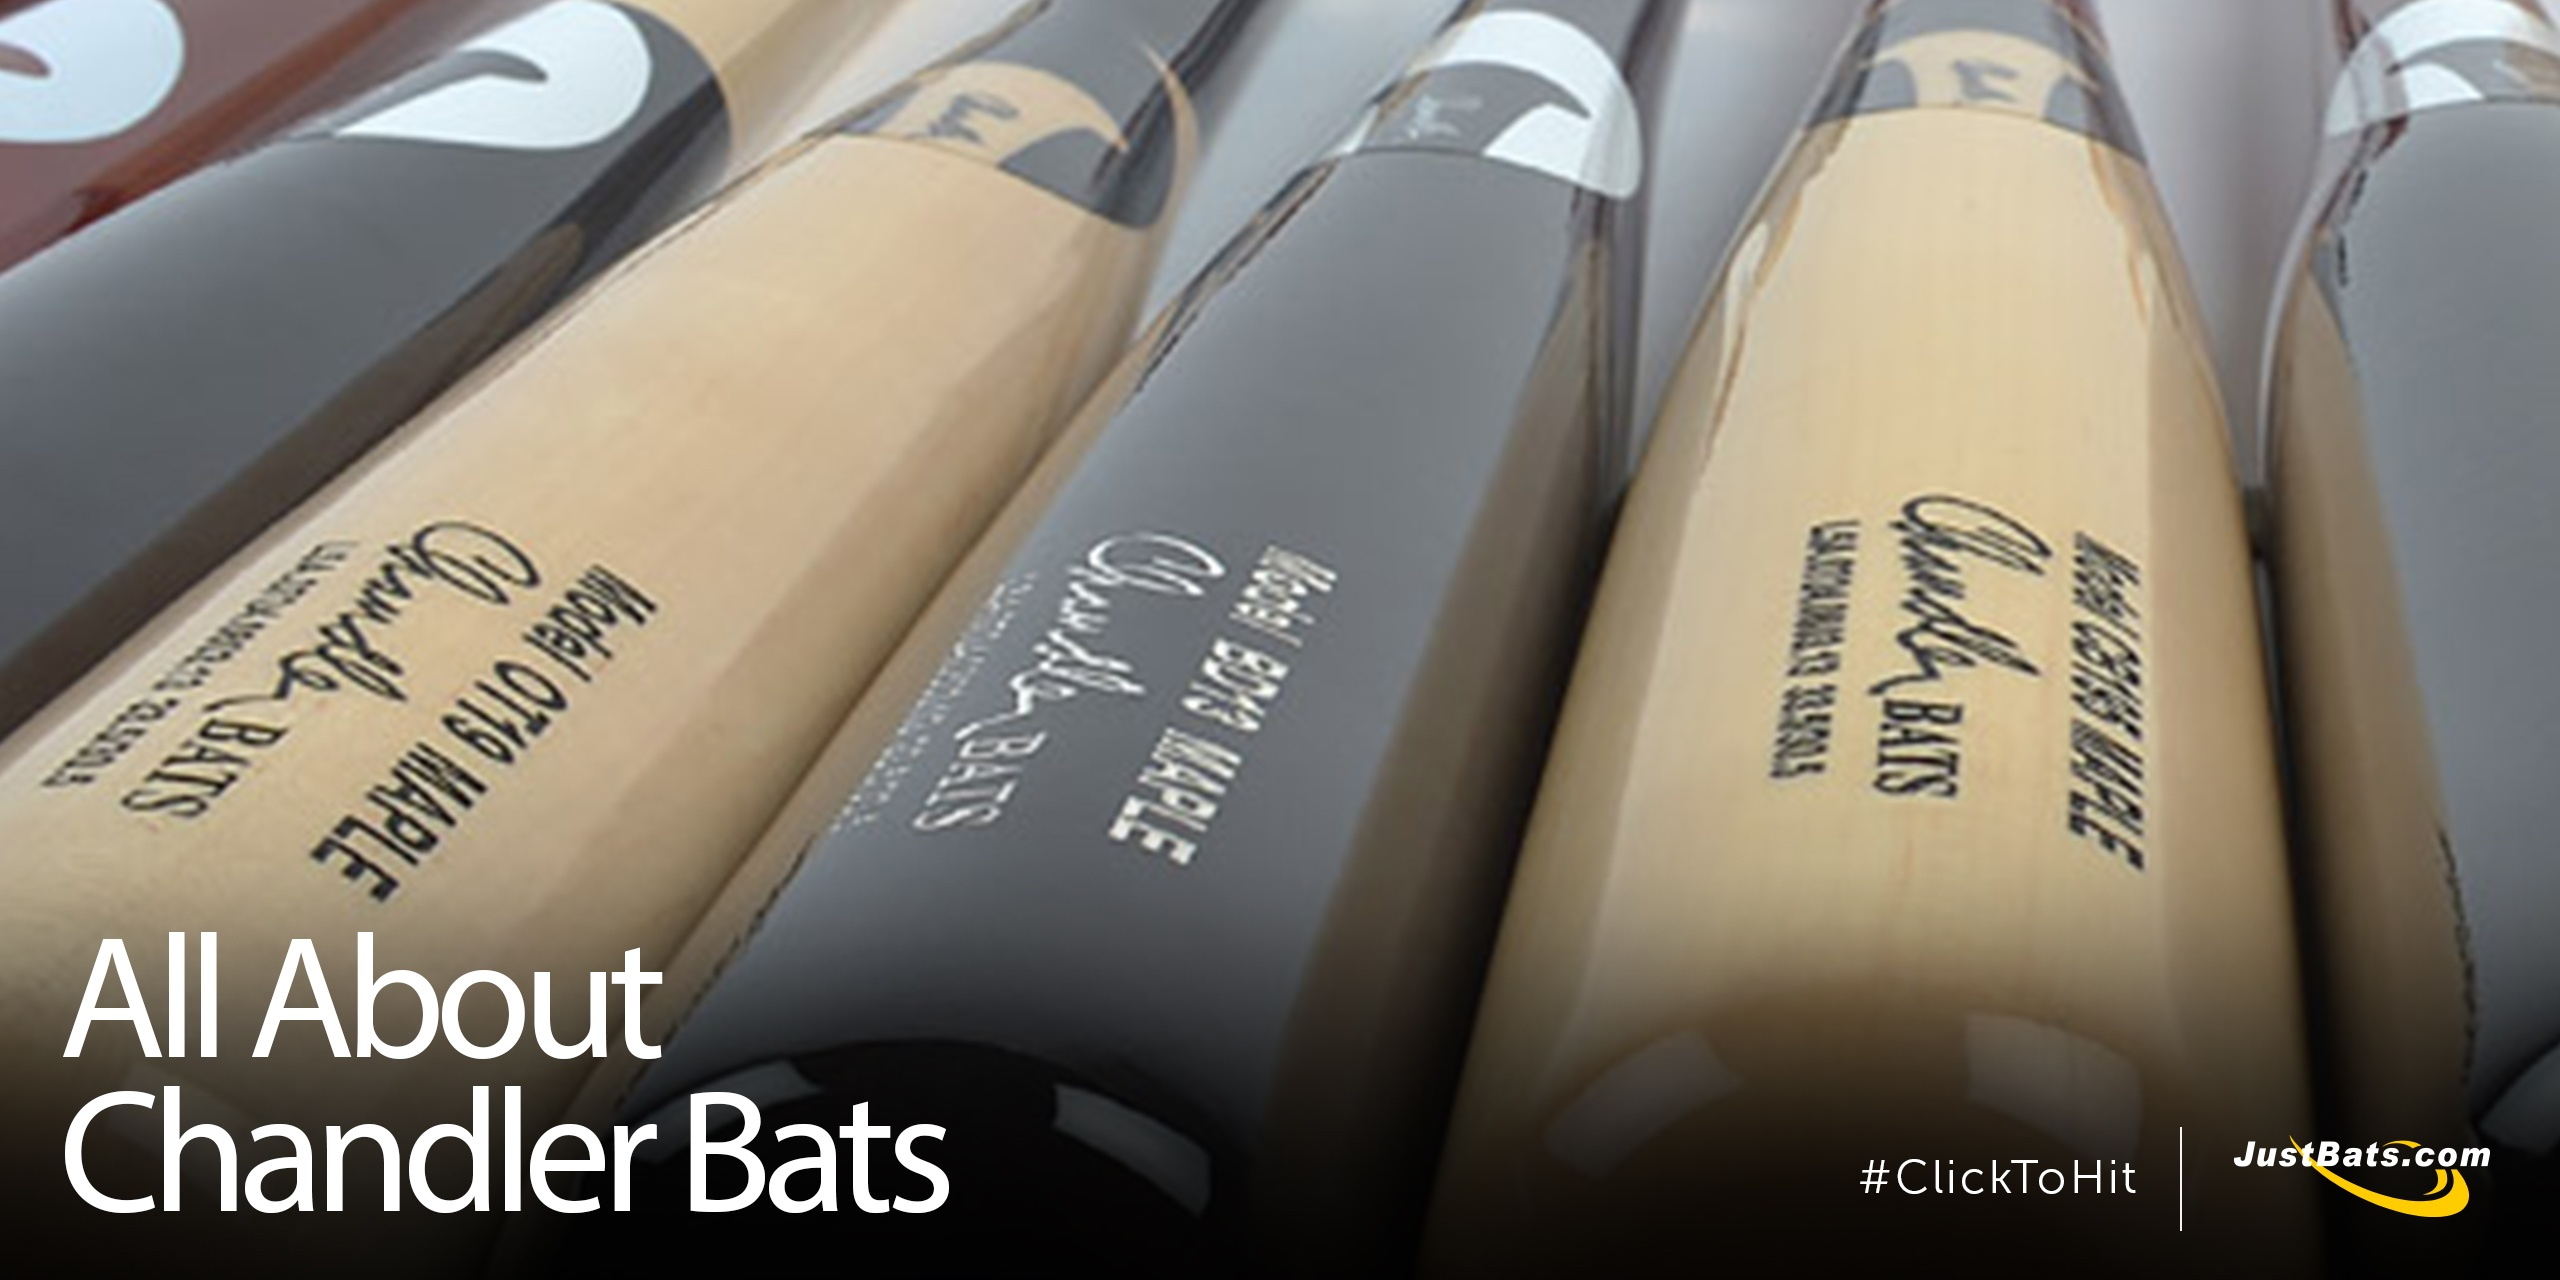 All About Chandler Bats - Blog.jpg